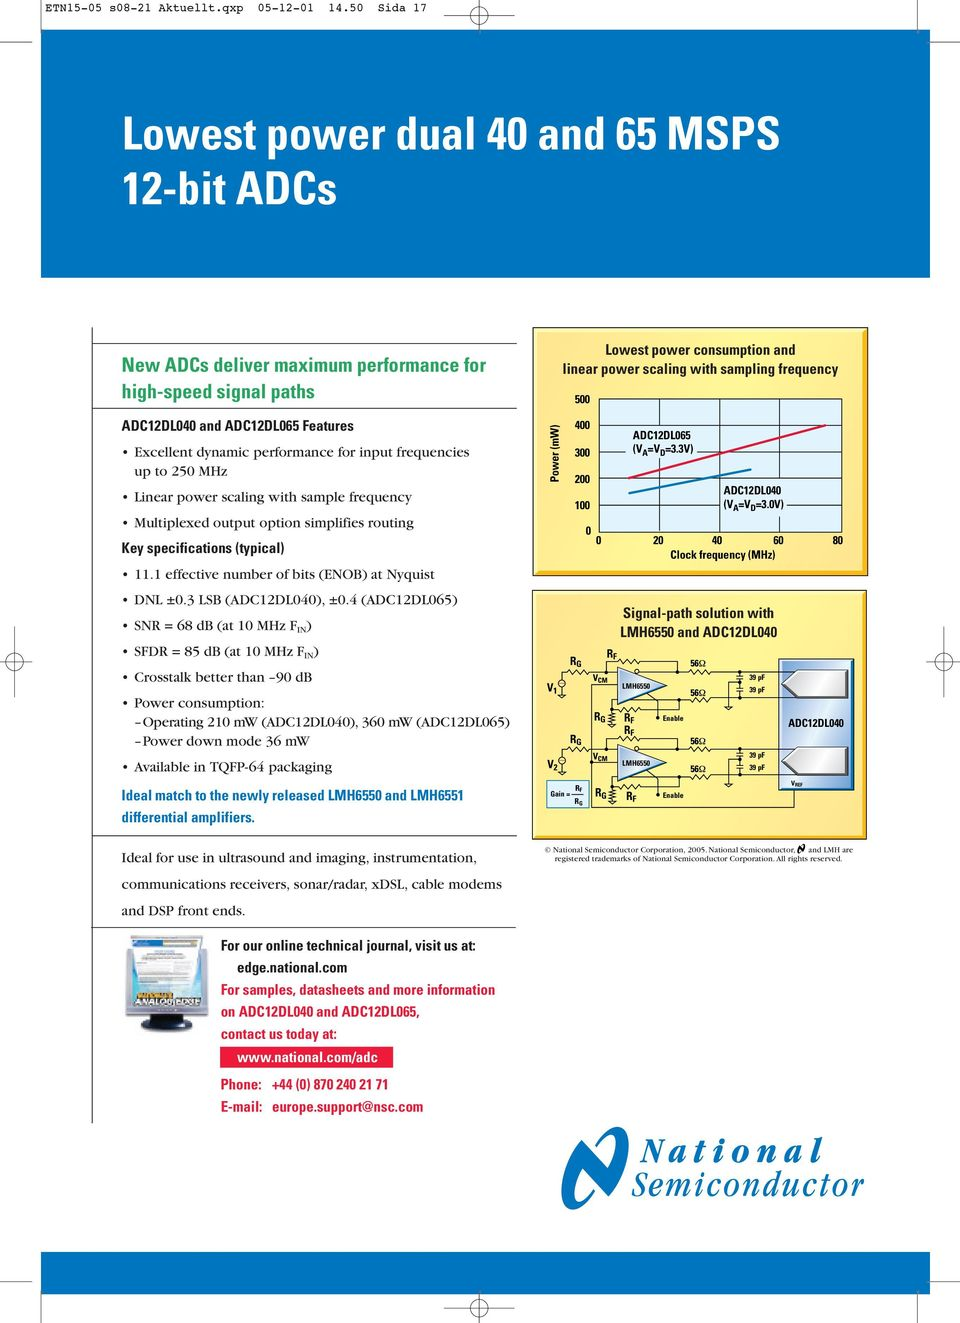 ADC12DL040 and ADC12DL065 Features Excellent dynamic performance for input frequencies up to 250 MHz Linear power scaling with sample frequency Multiplexed output option simplifies routing Key